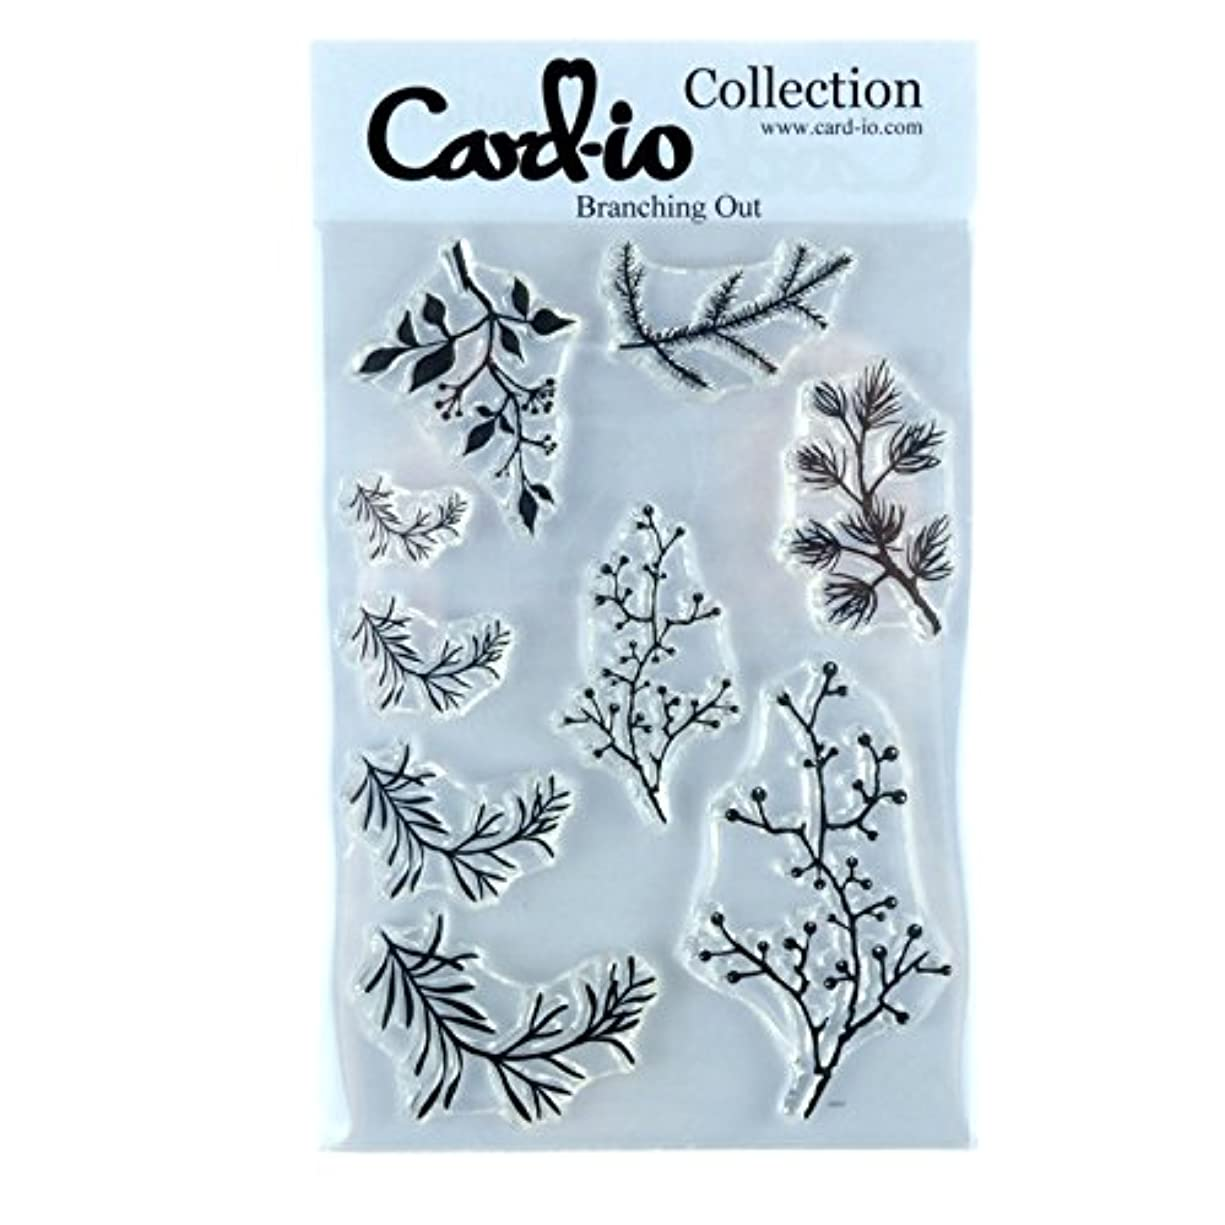 Card-io Branching Out Clear Stamp Set, Synthetic Material, 22.4 x 11.4 x 0.4 cm